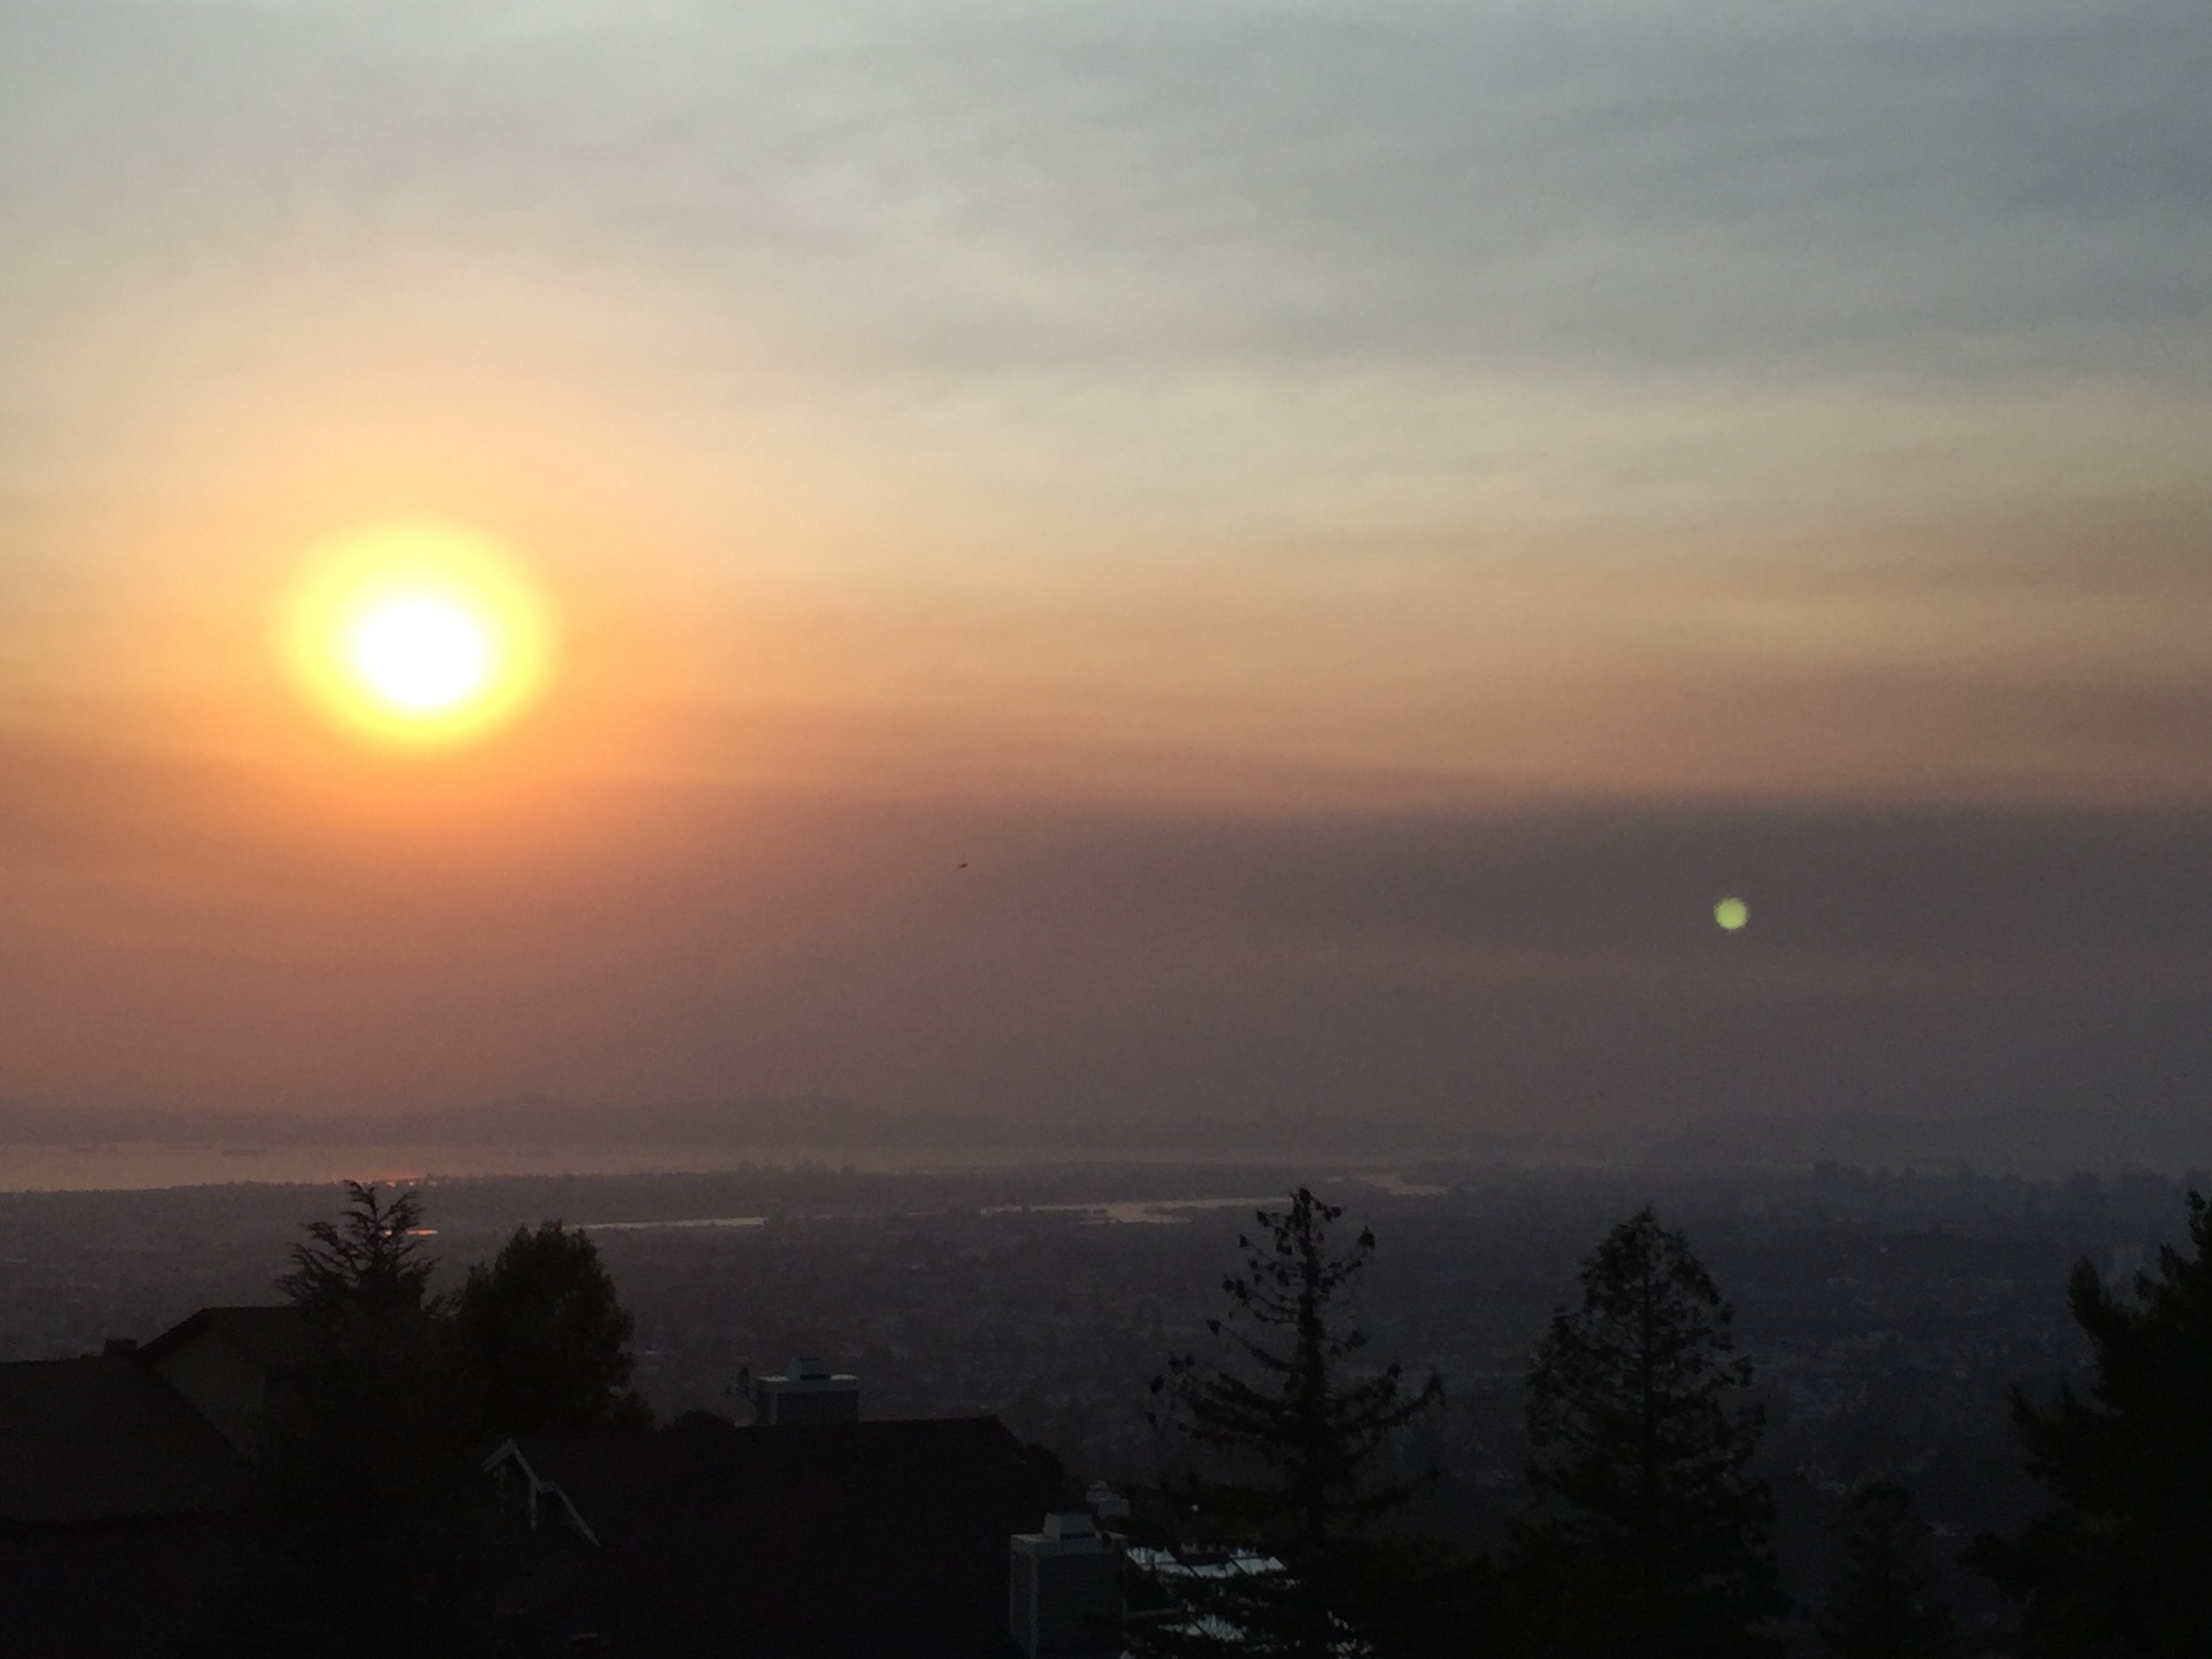 A smoky view of the bay from Merritt College, Monday 10/9, 6 pm